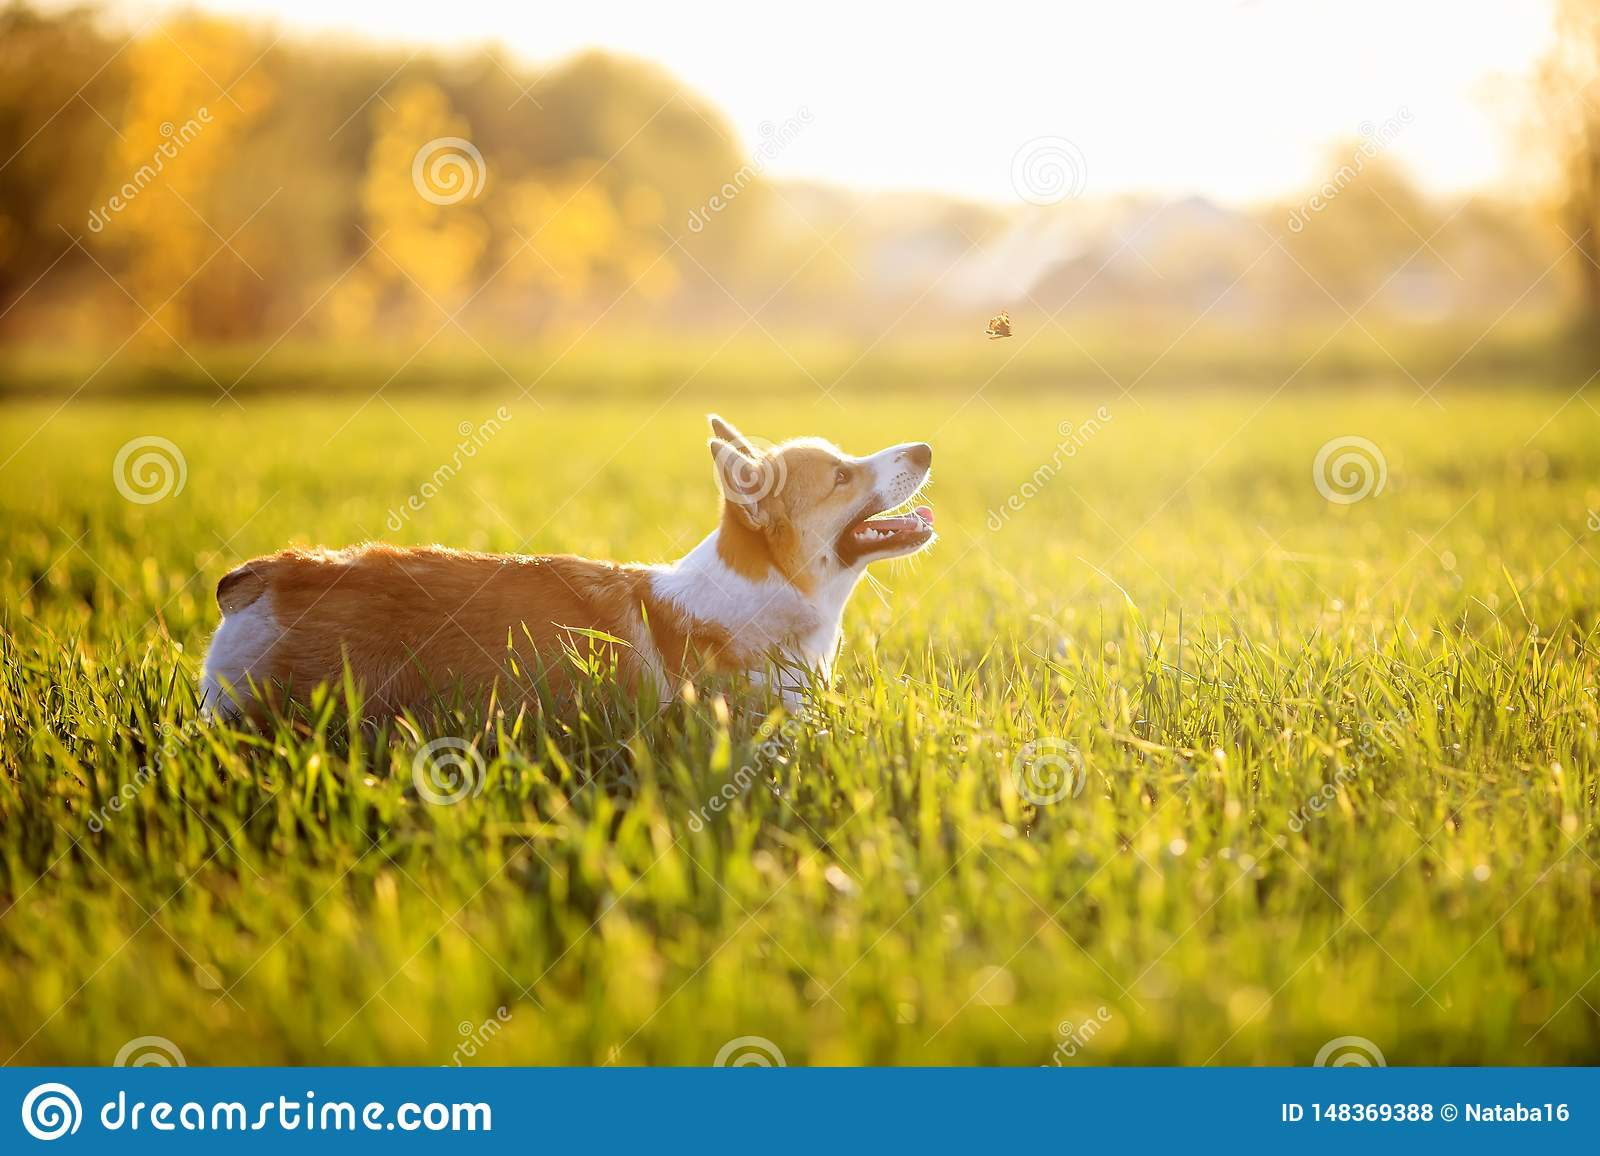 dog puppy Corgi fun running on a green meadow and jumping over a flying butterfly in a summer meadow in the grass